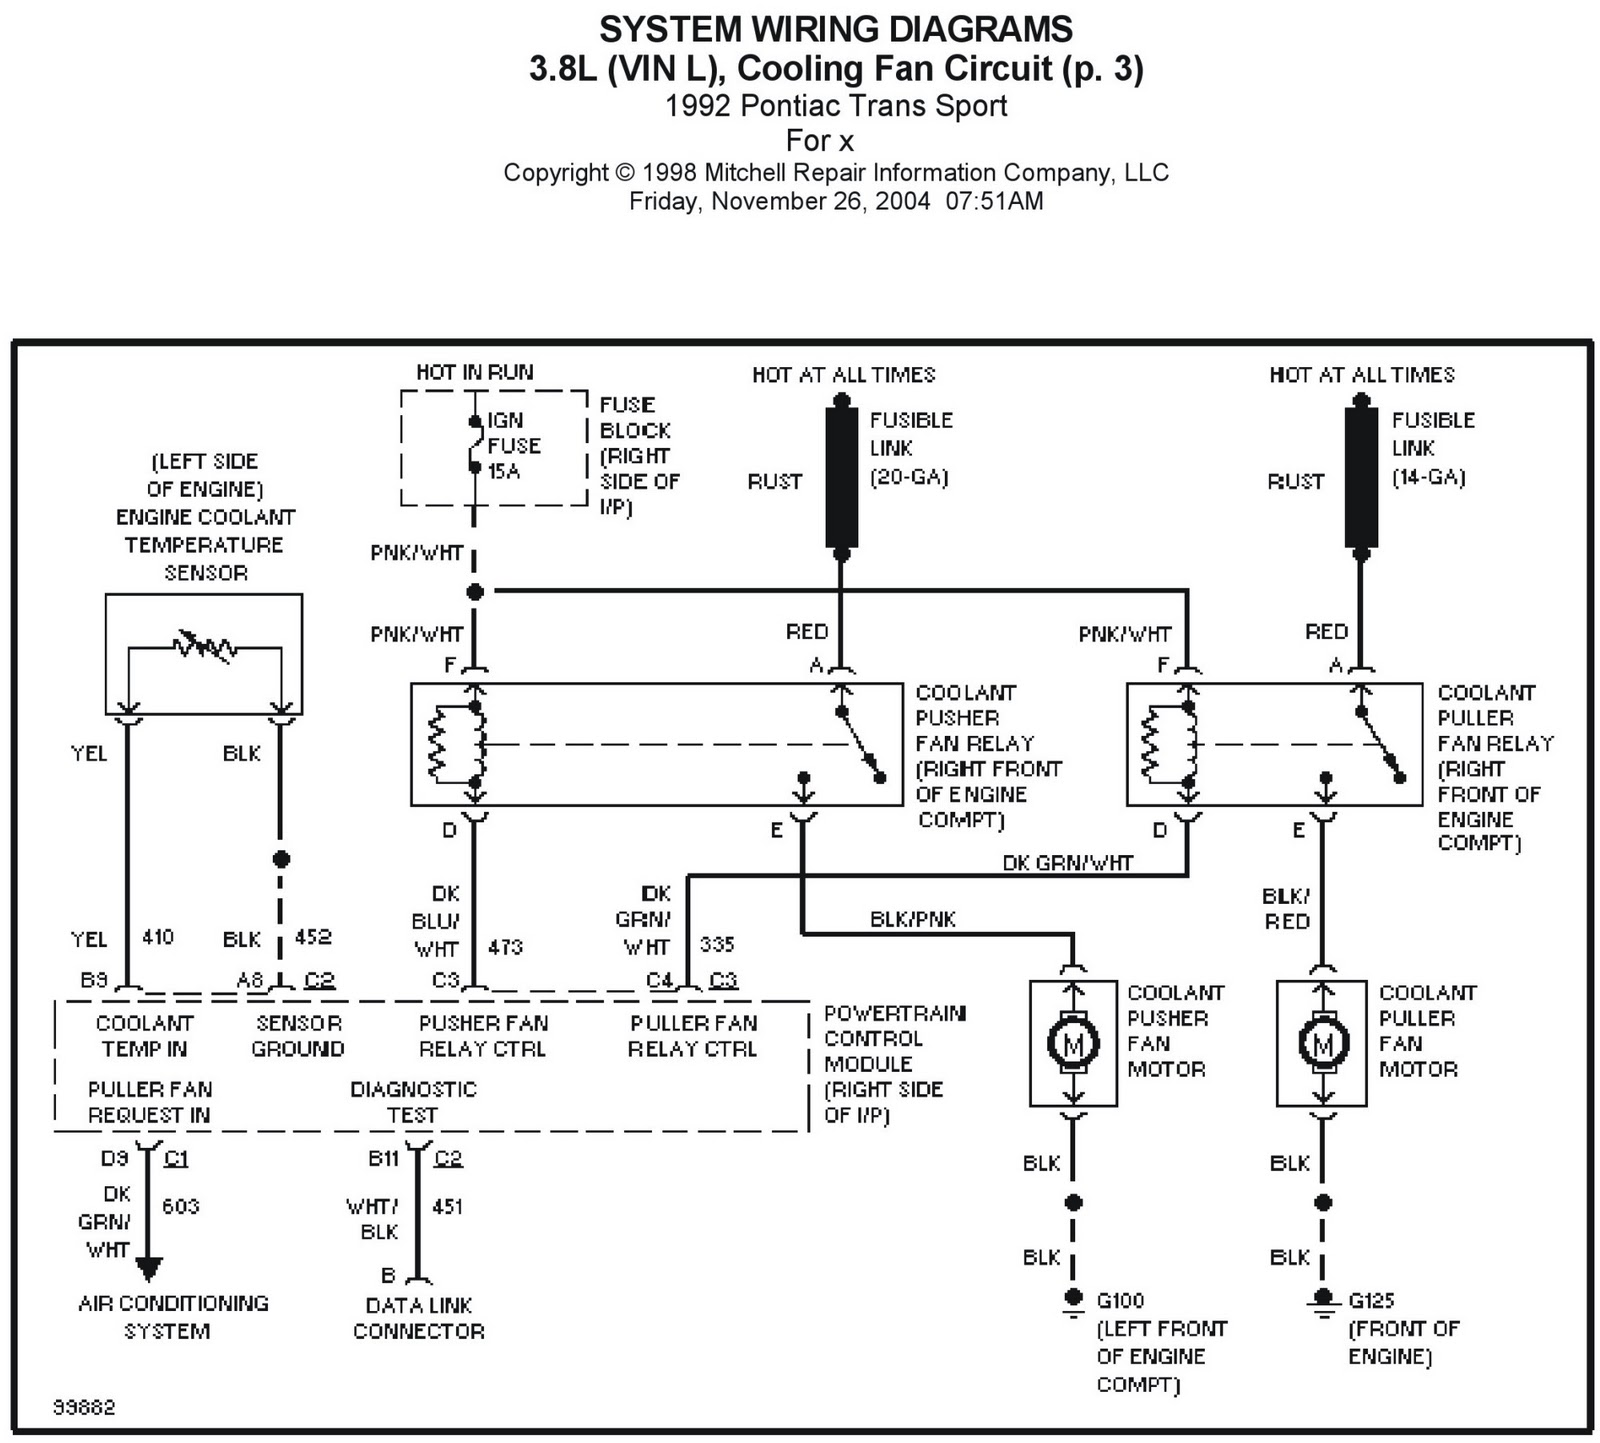 hight resolution of circuit and wiring diagram pontiac trans sport wiring diagram andpontiac trans sport wiring diagram and electrical